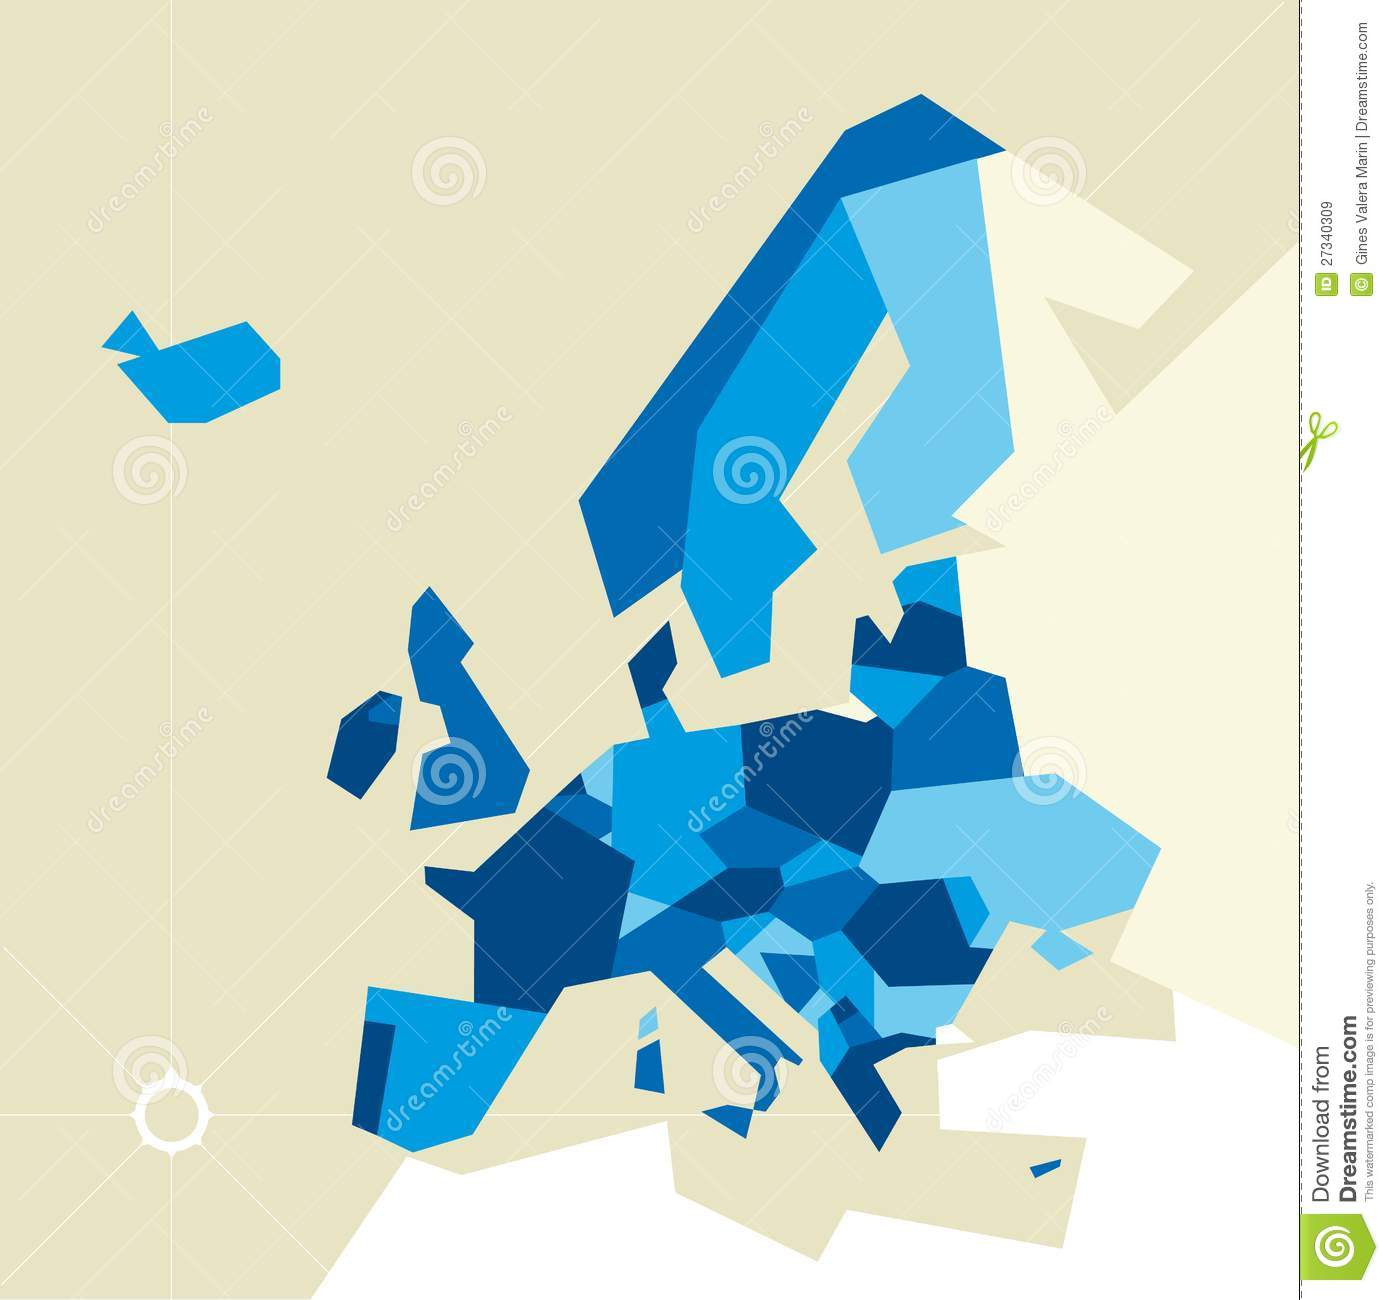 vector illustration of europe - photo #17